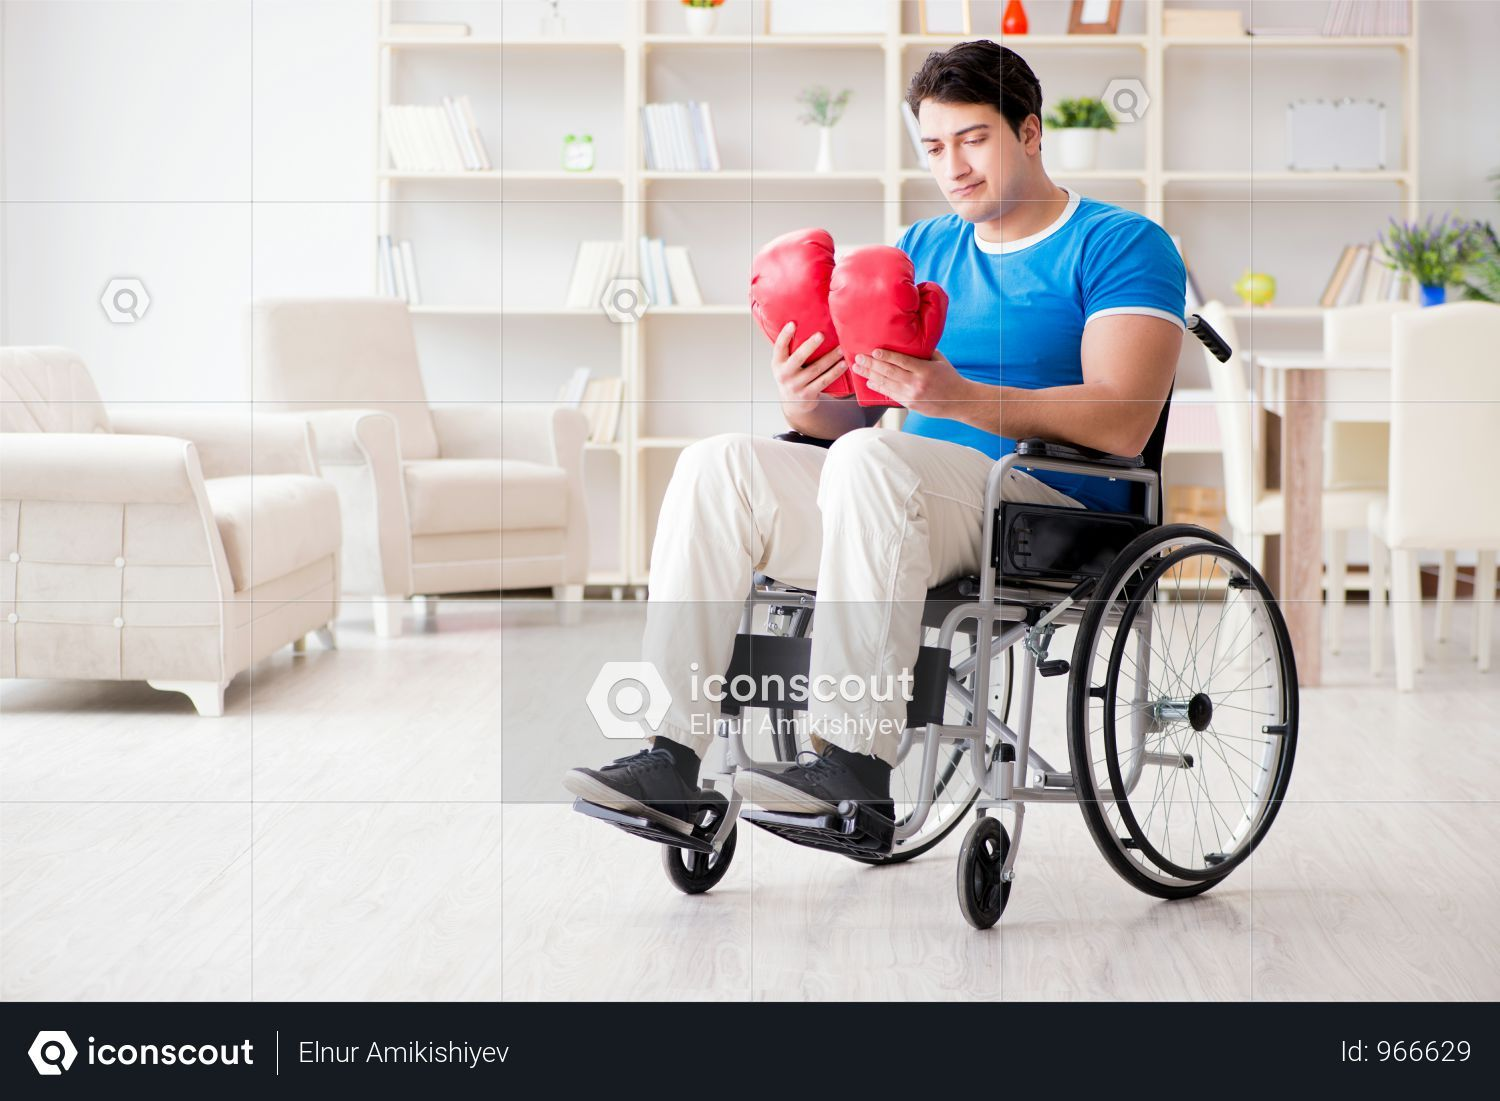 Premium Disabled Boxer At Wheelchair Recovering From Injury Photo Download In Png Jpg Format Disability Recover Wheelchair